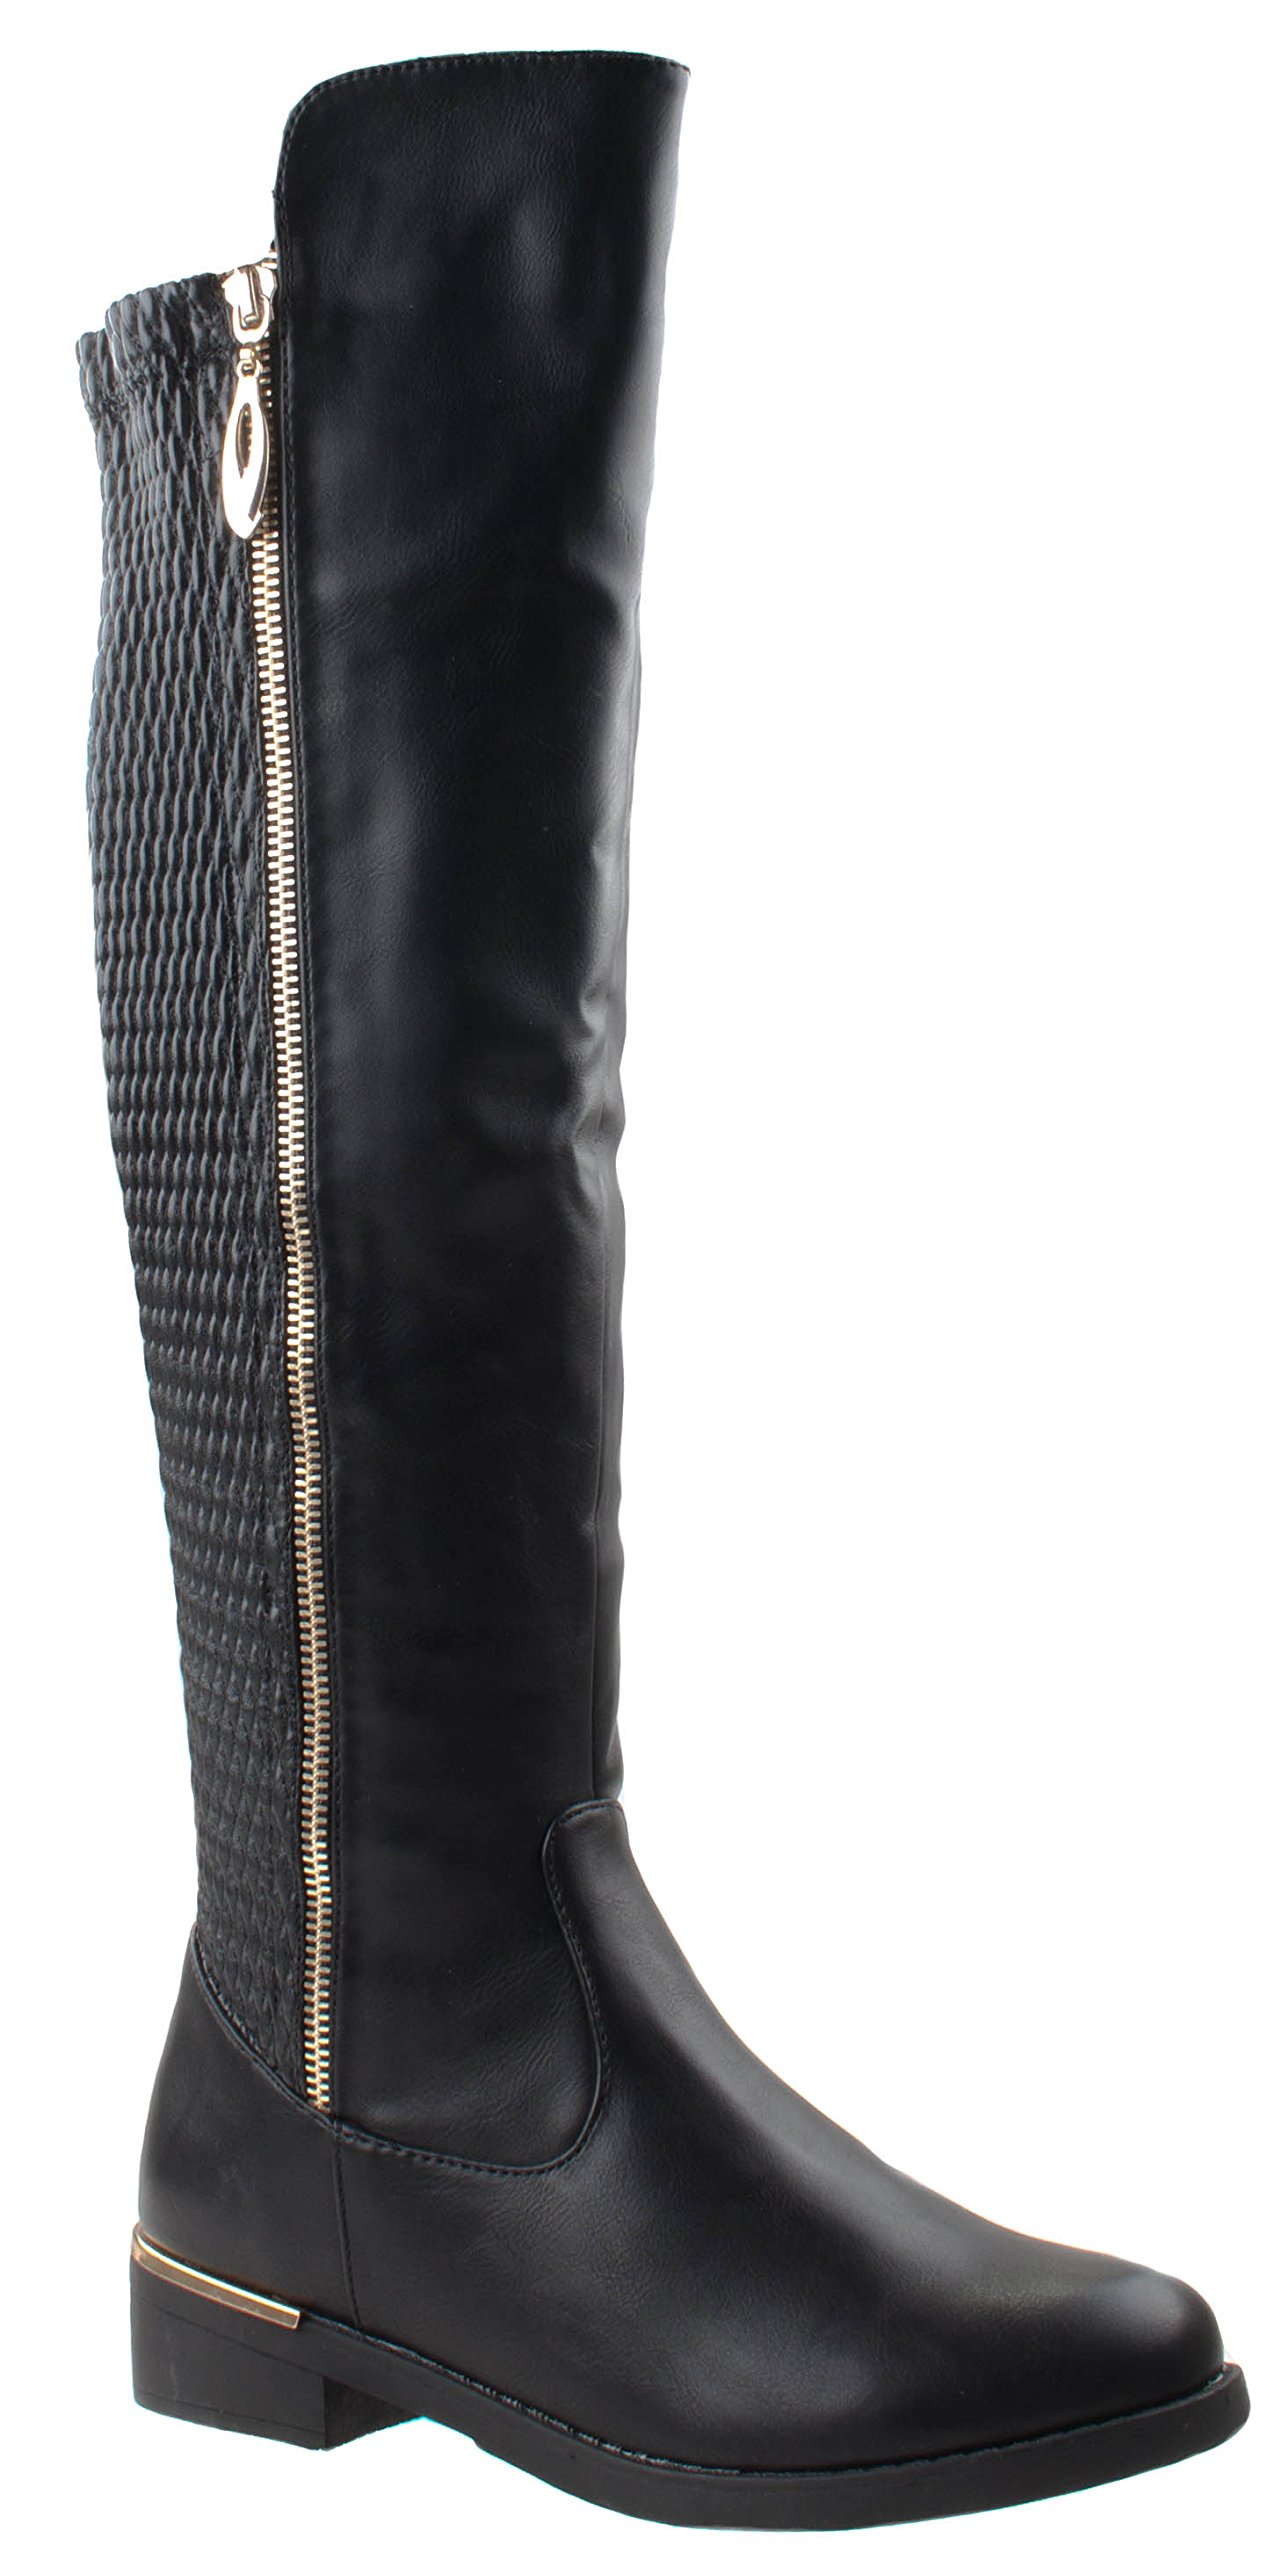 Top Moda Shoes Women's Ginger-5 Black Riding Round Toe Knee High Boots Stretch Elastic Shaft Wide Calf 7.5 D(M) US